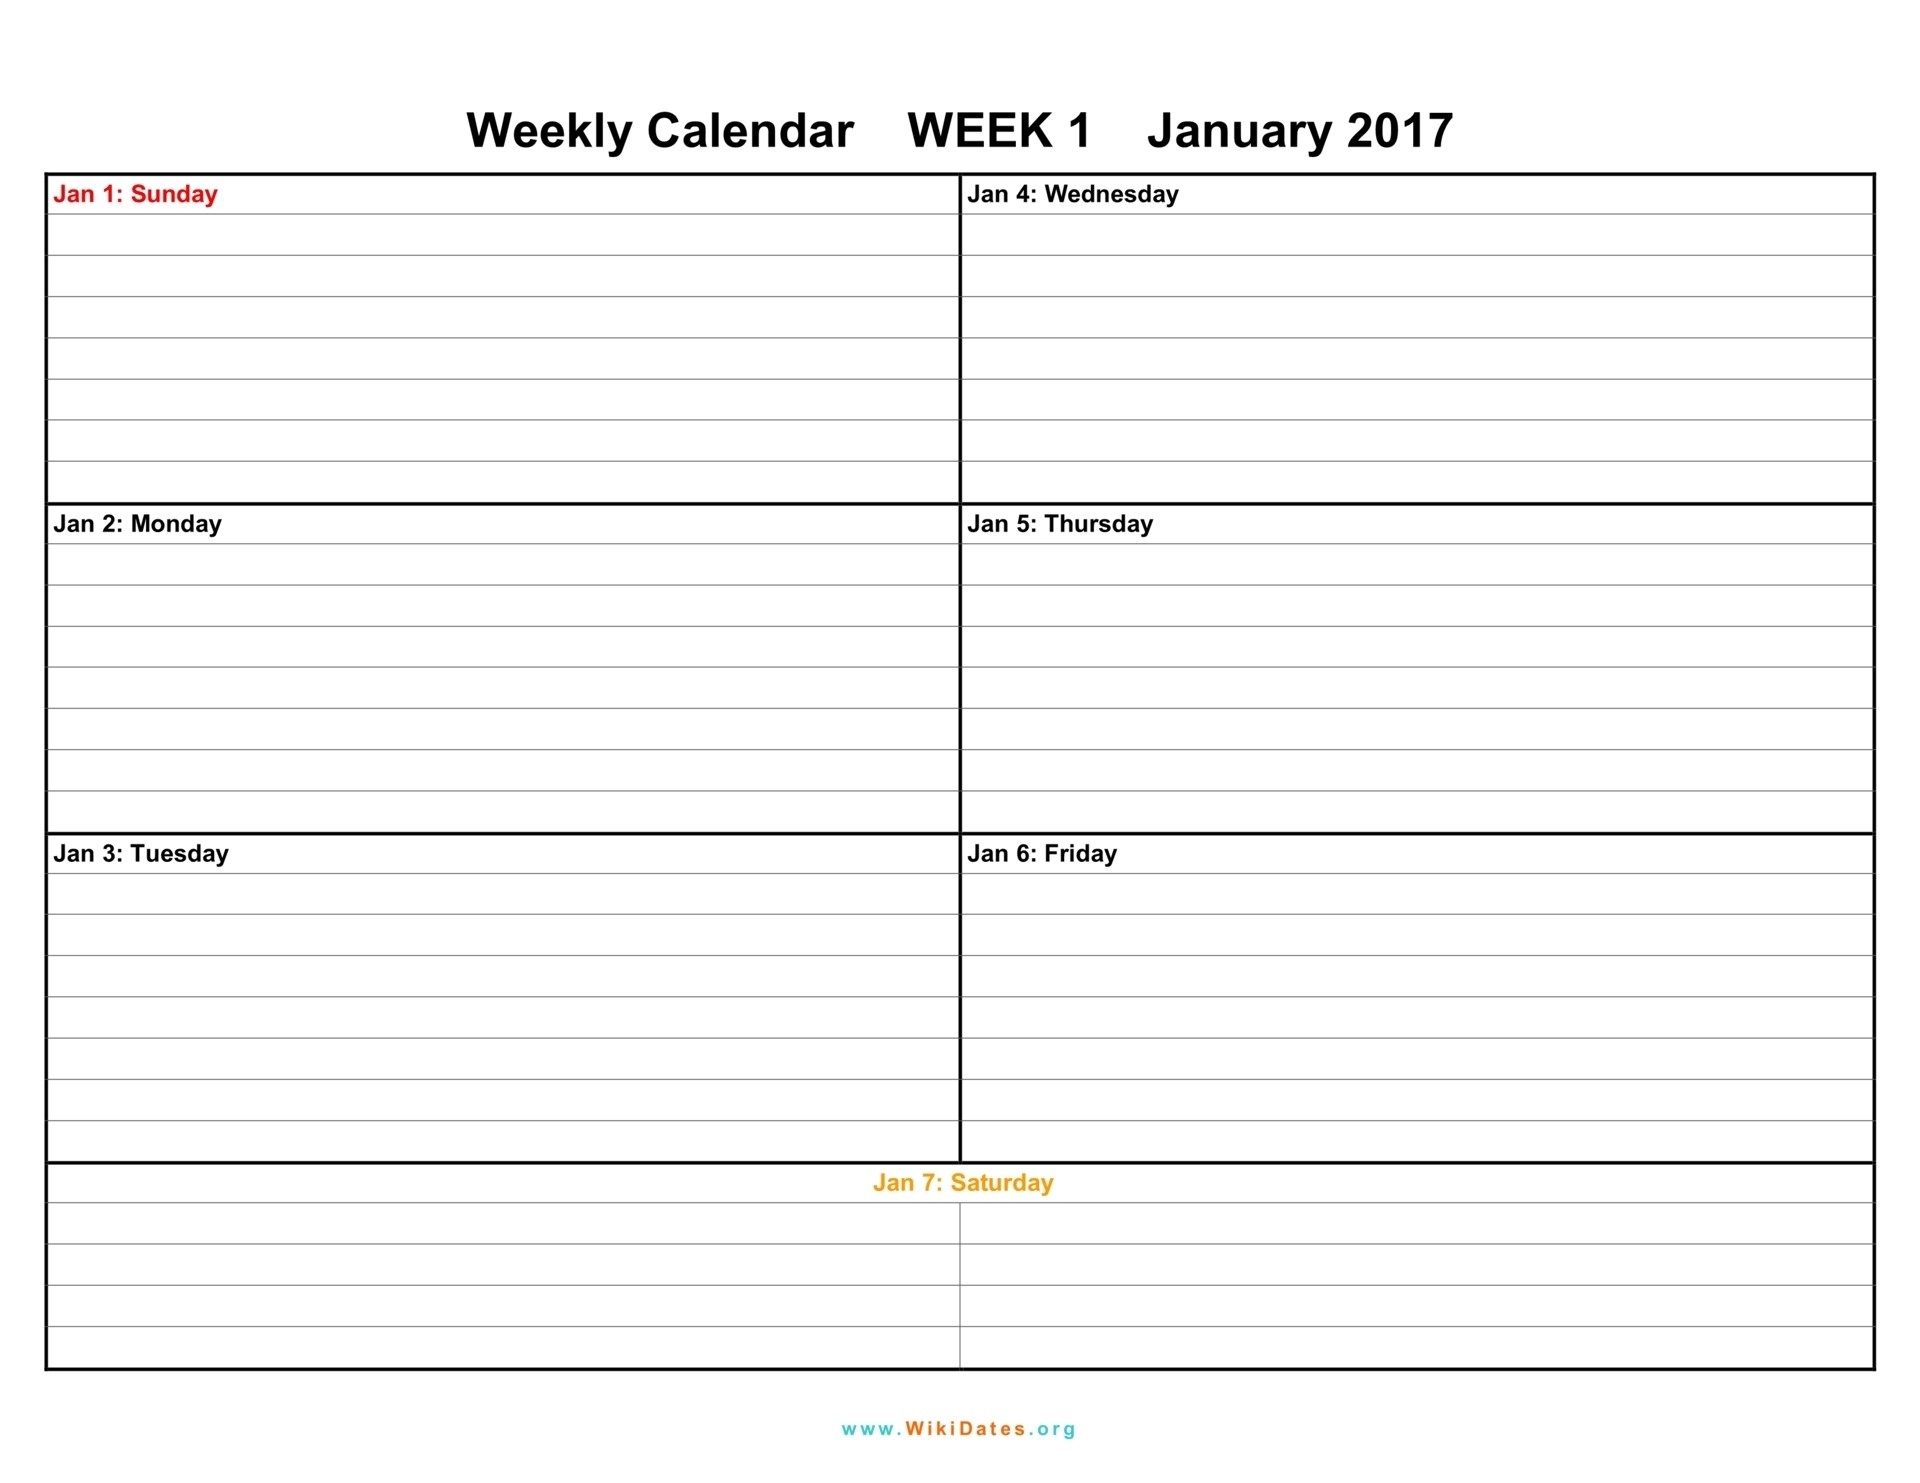 Blank Weekly Calendar Template With Times Time Slots Downloadable intended for Weekly Calendar Template With Minute Time Slots